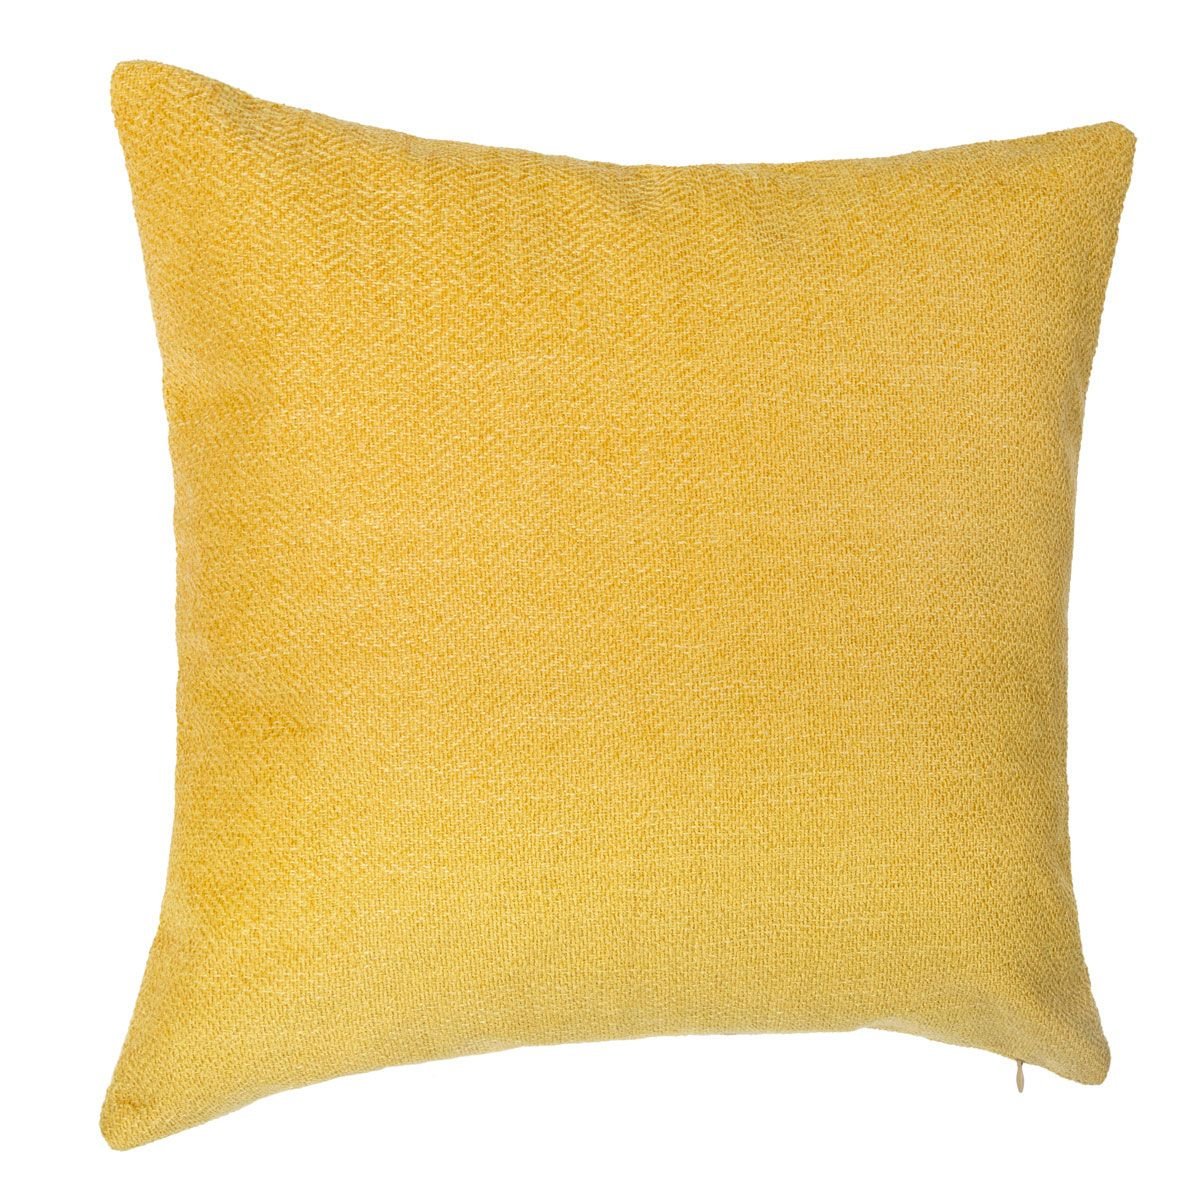 Coussin Baraco moutarde 40x40cm